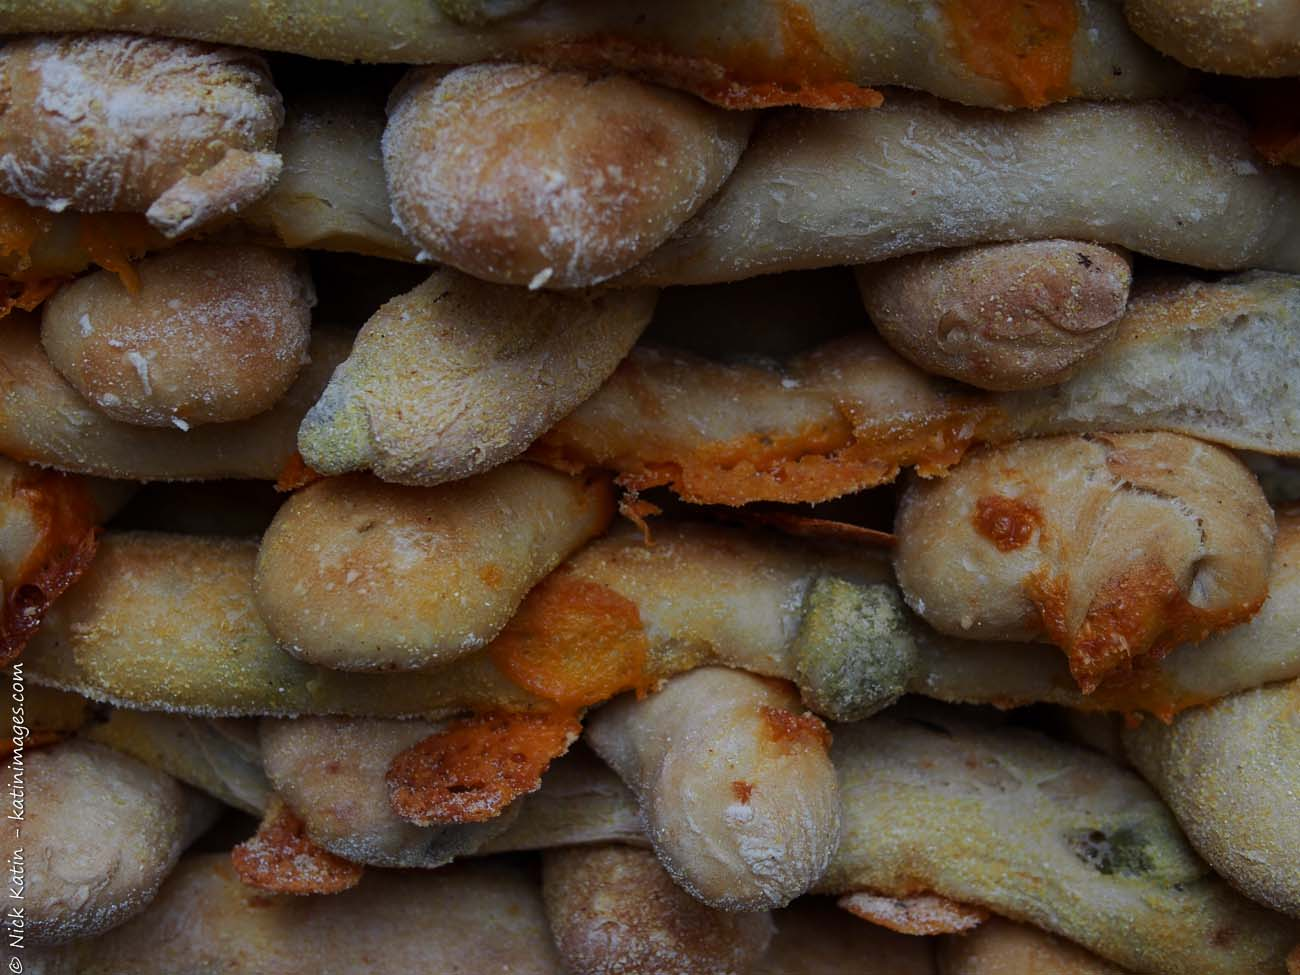 Bread Sticks at one of London's famous markets, Borough Markets